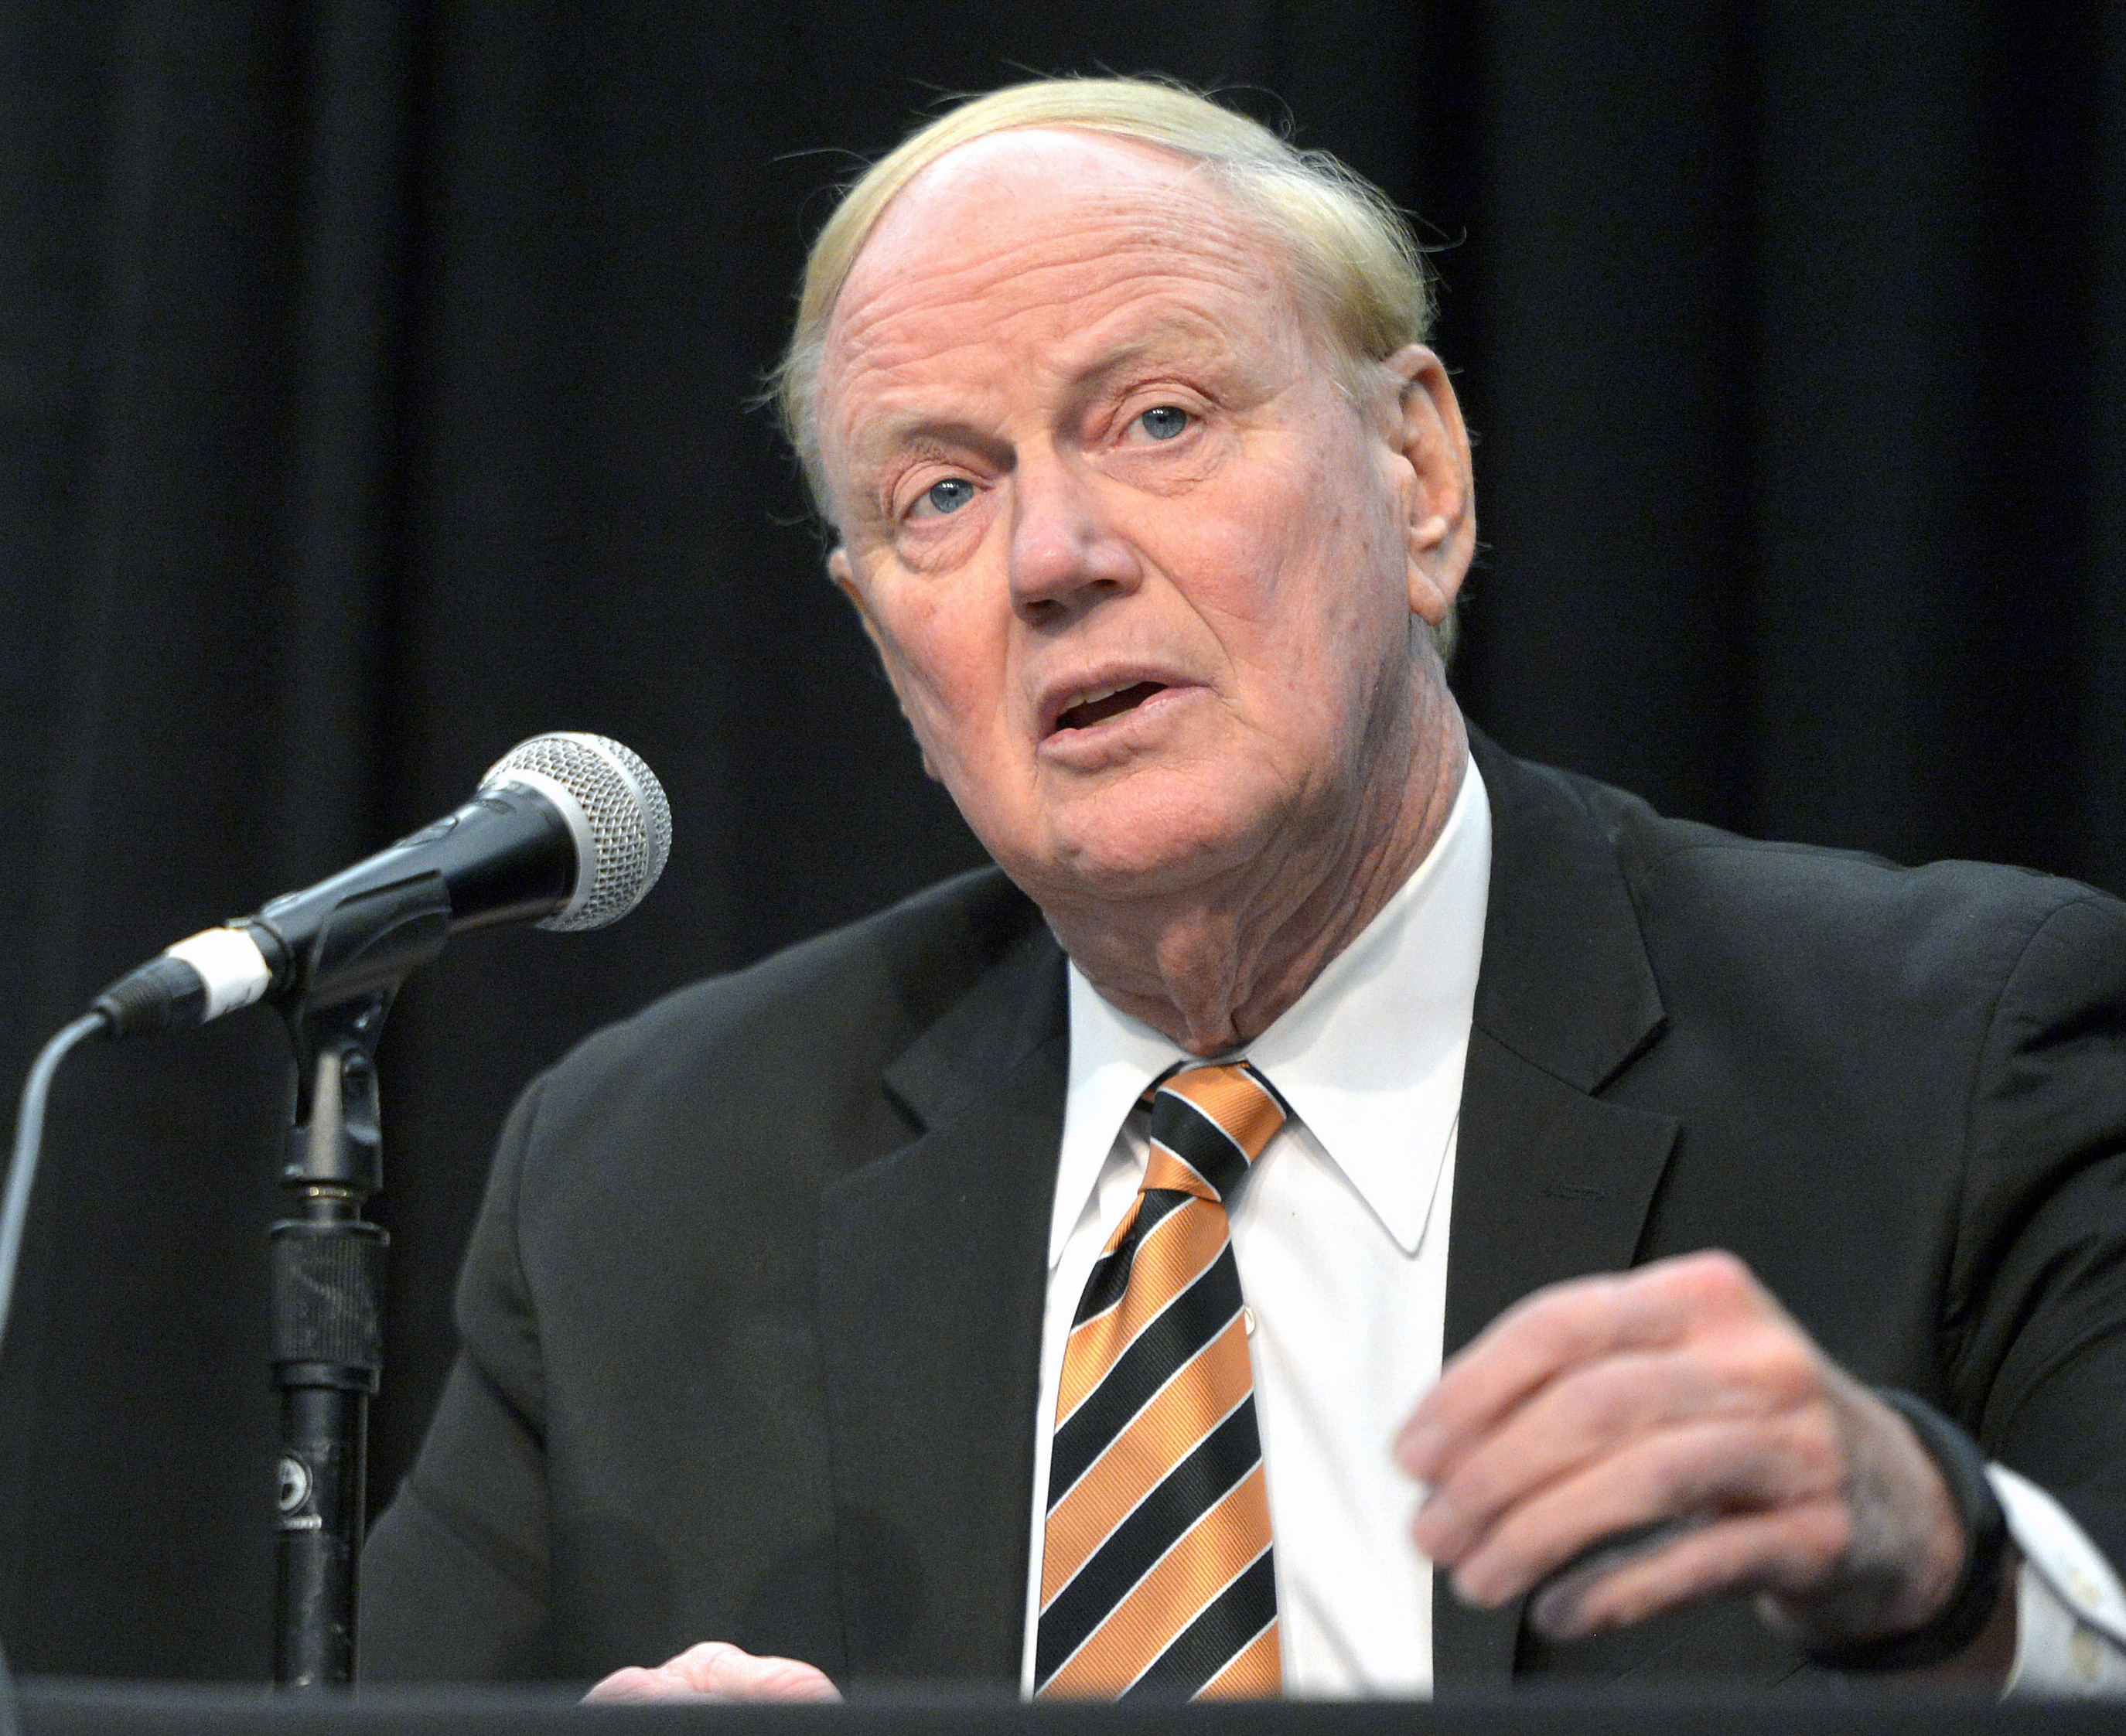 FILE - In this Feb. 5, 2016, file photo, University of Louisville President Dr. James Ramsey address the media in Louisville Ky. Louisville has announced additional self-imposed sanctions on its men's basketball program in the wake of an escort's allegati